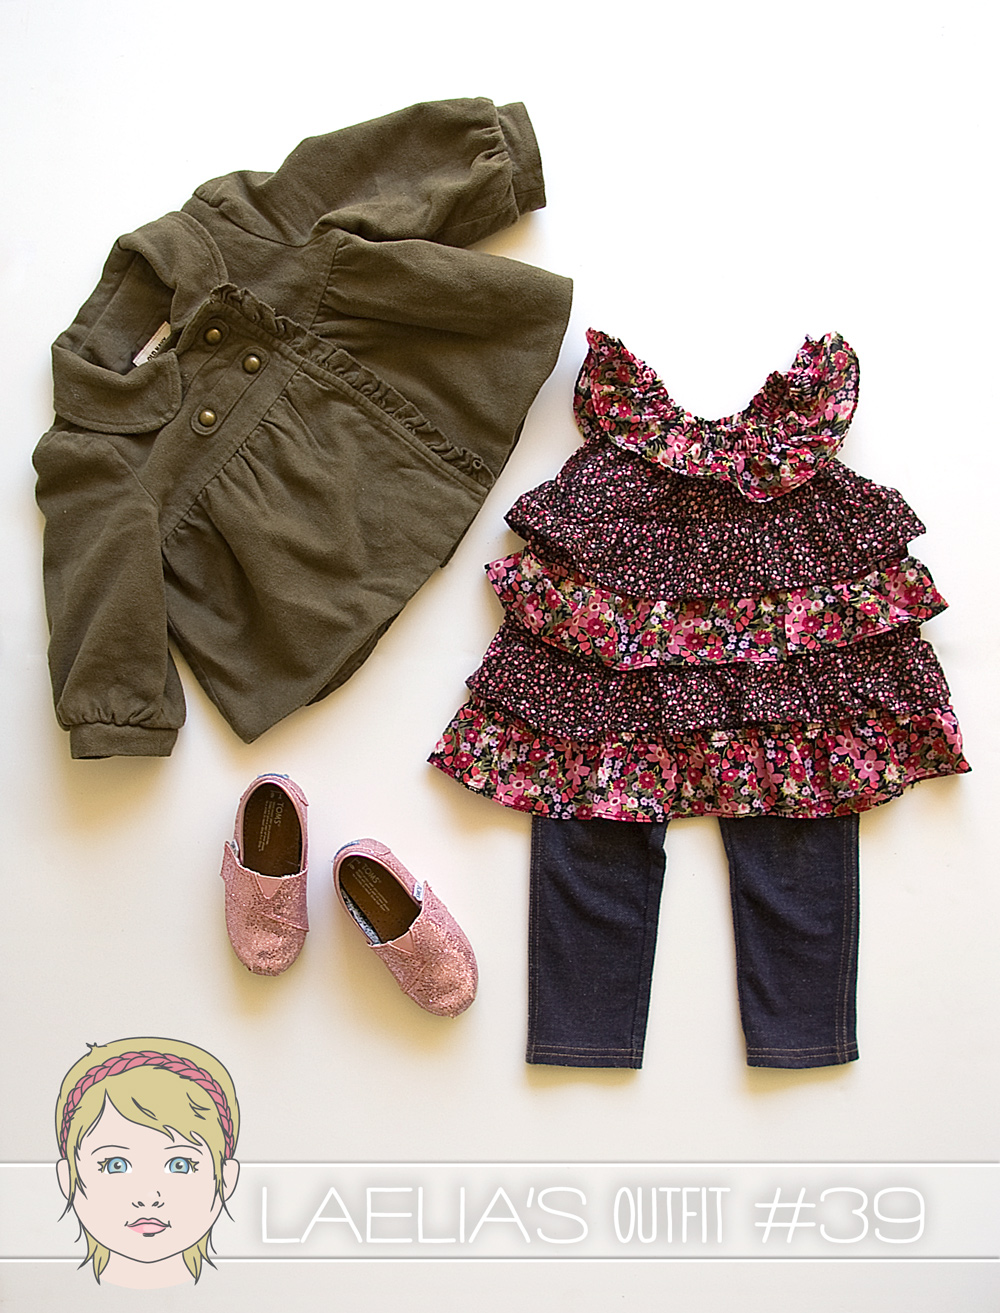 LaeliaOutfit39